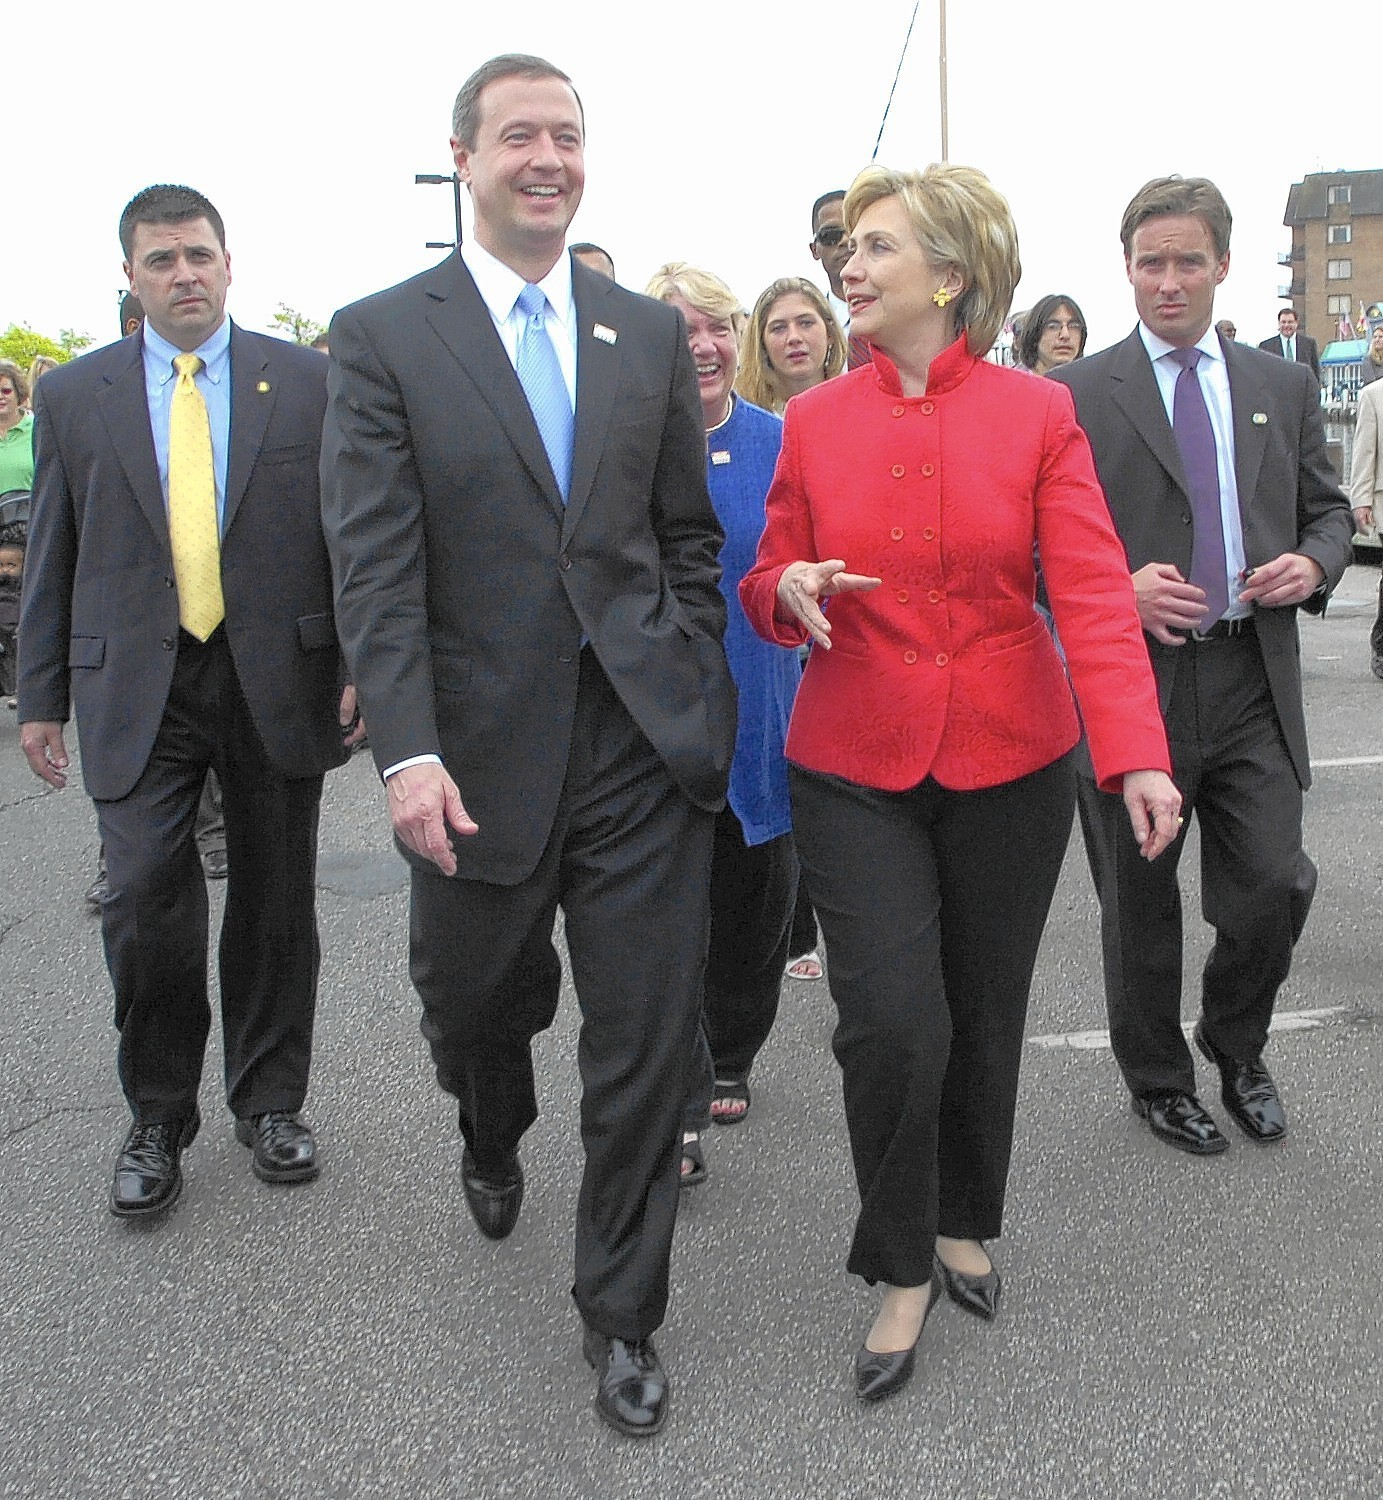 Gov. Martin O'Malley walks with then-Sen. Hillary Clinton in 2007 during a campaign event.